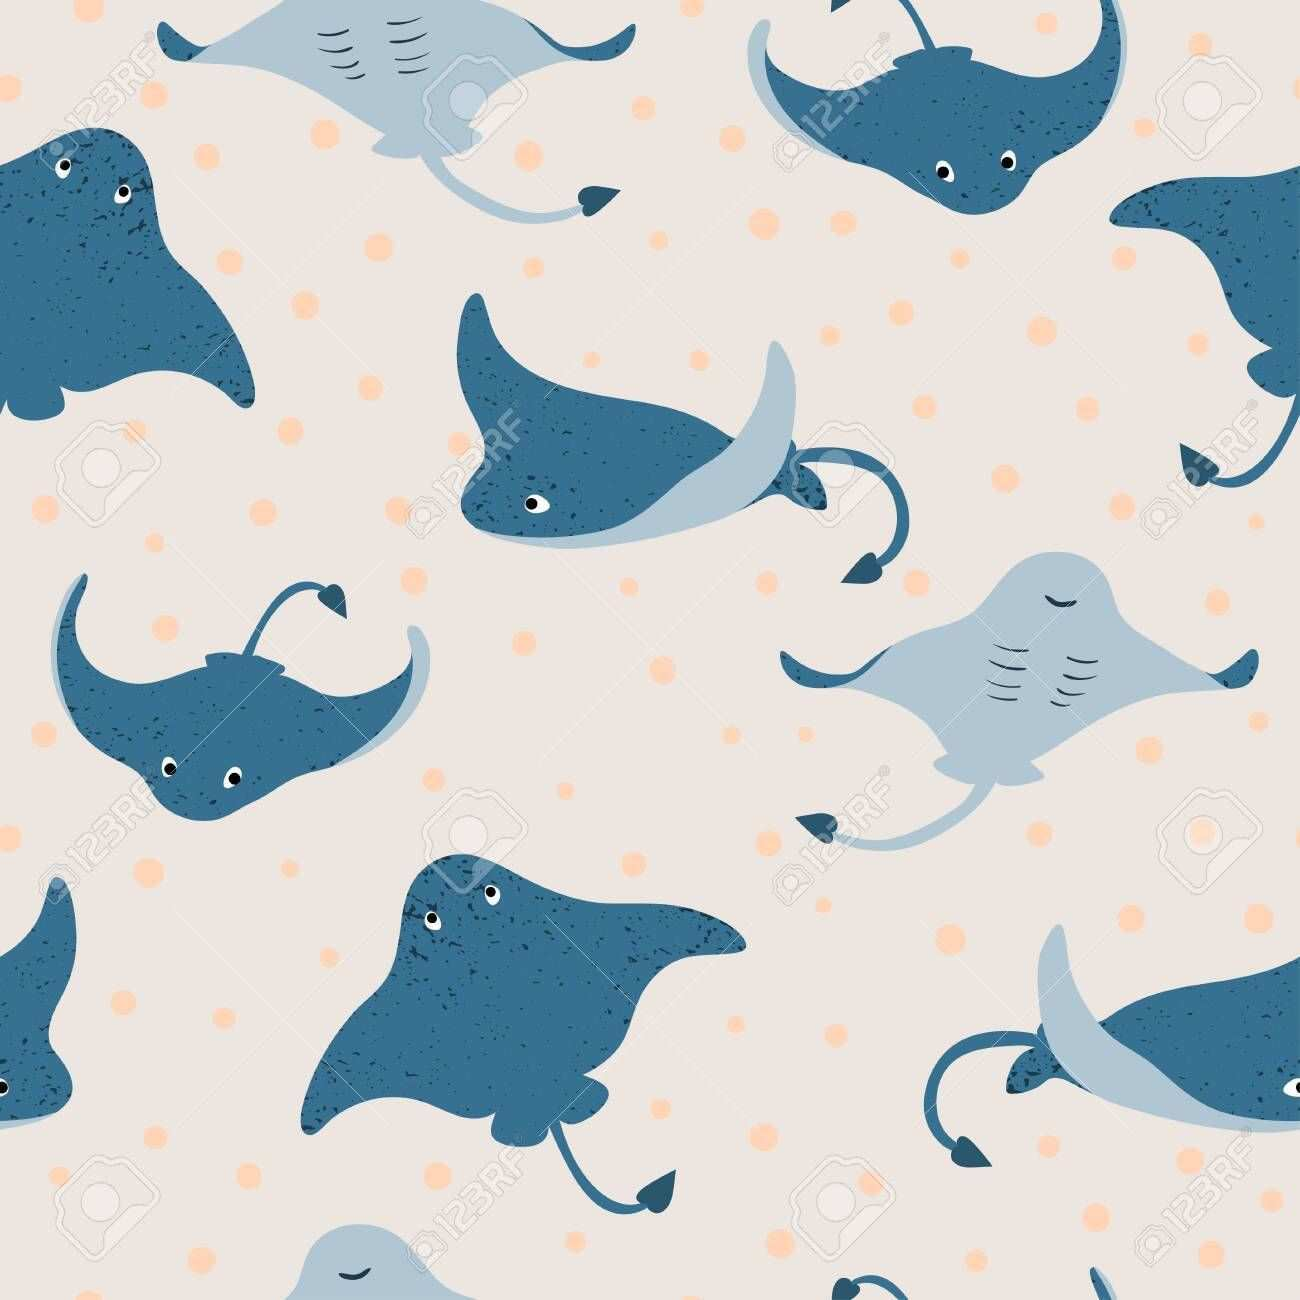 Seamless Underwater Pattern With Stingray Fish Illustration Aff Pattern Underwater Seamless Illustrati Fish Illustration Stingray Fish Cute Animals